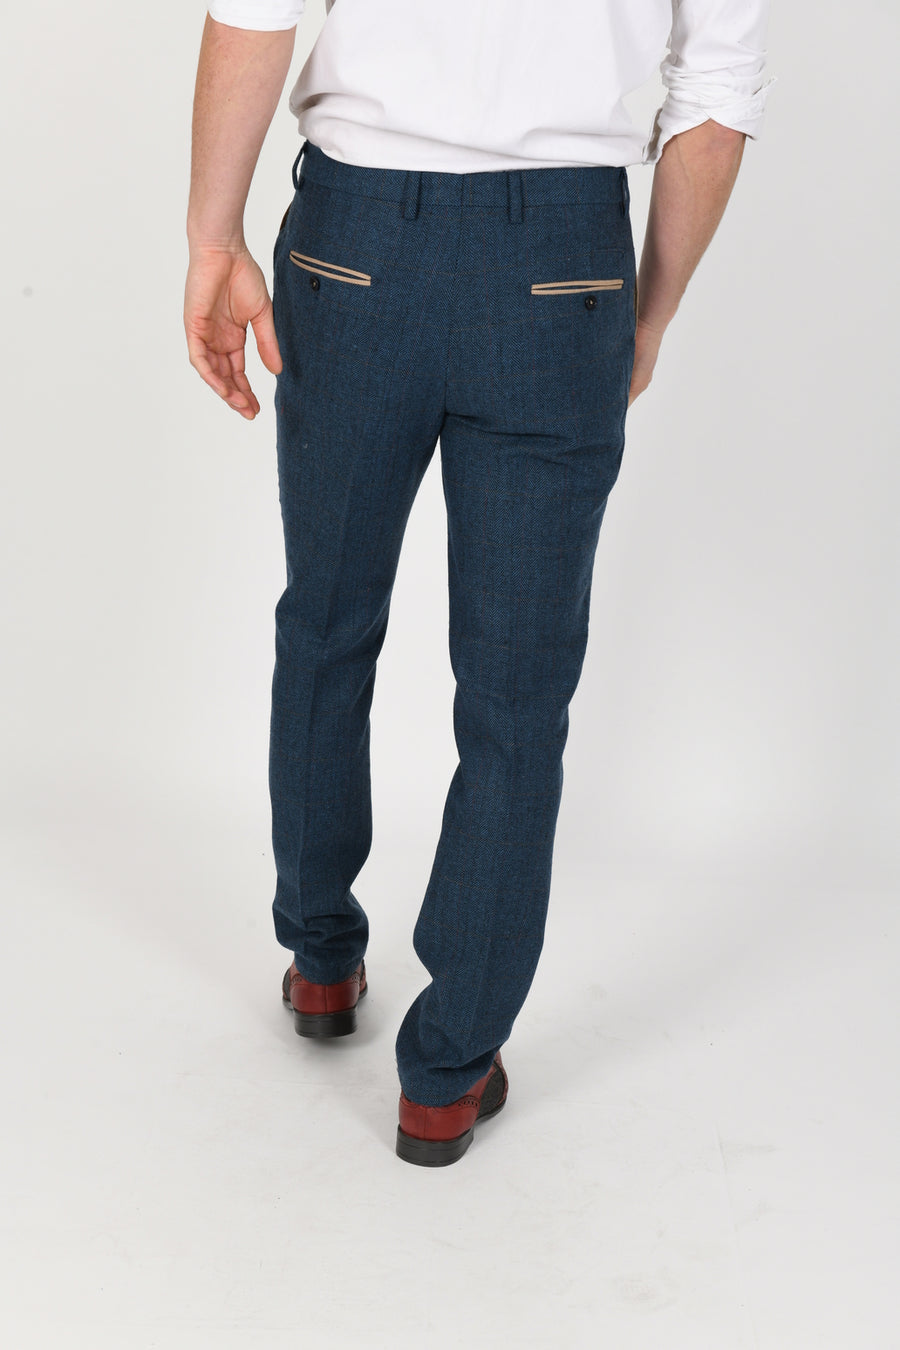 Dion Blue Wedding Trousers - Wedding Suit Direct